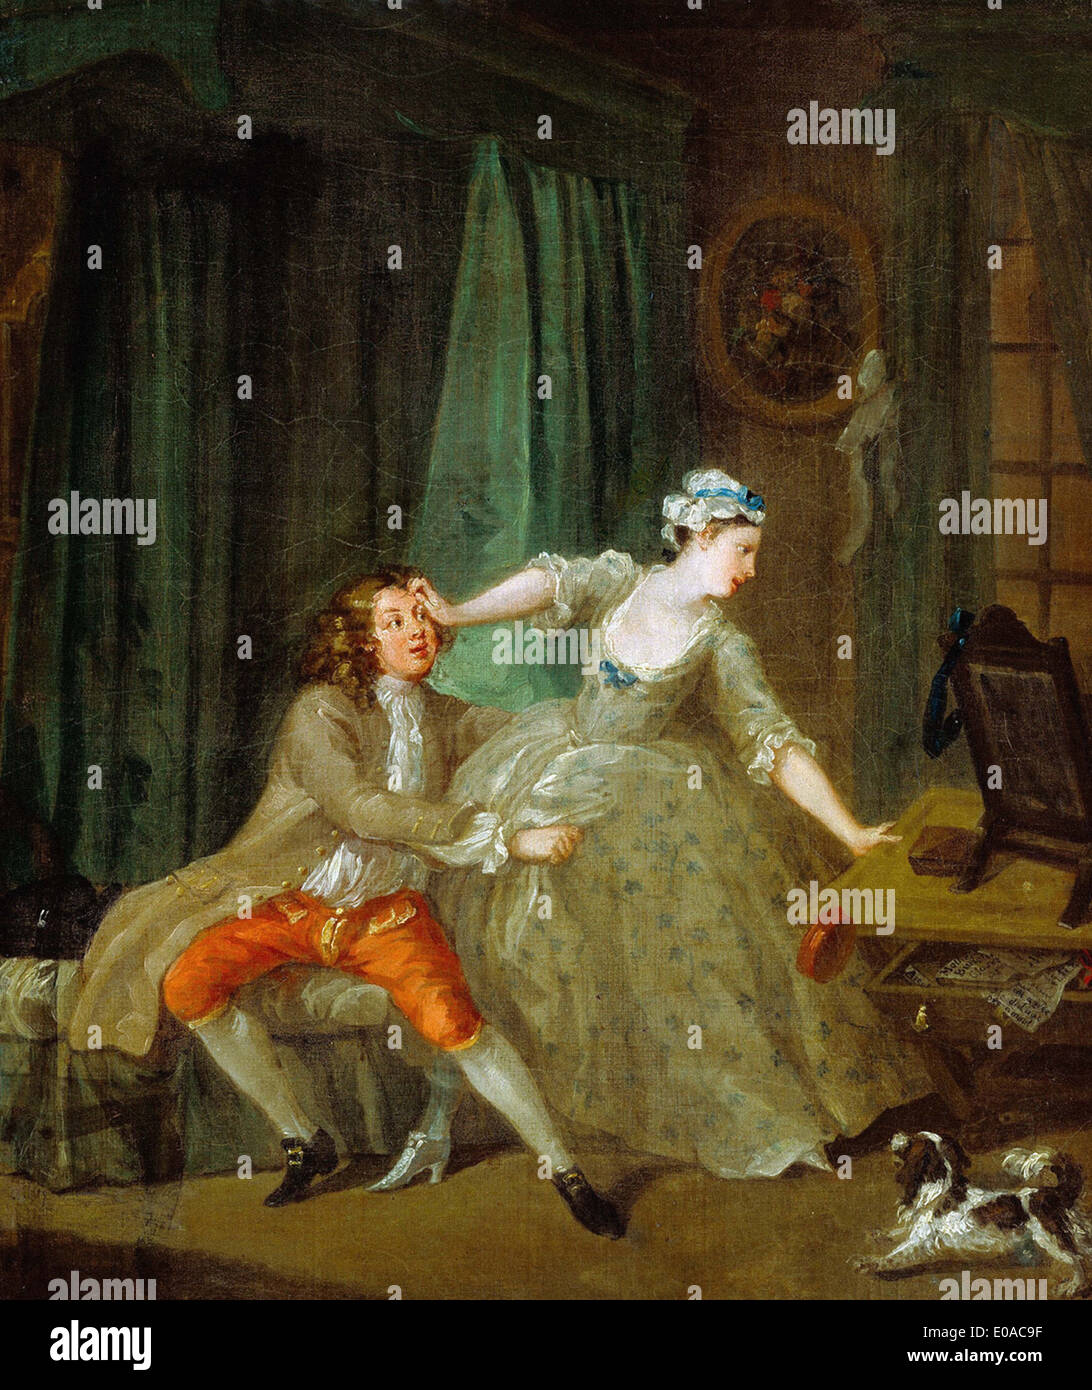 William Hogarth Before - Stock Image